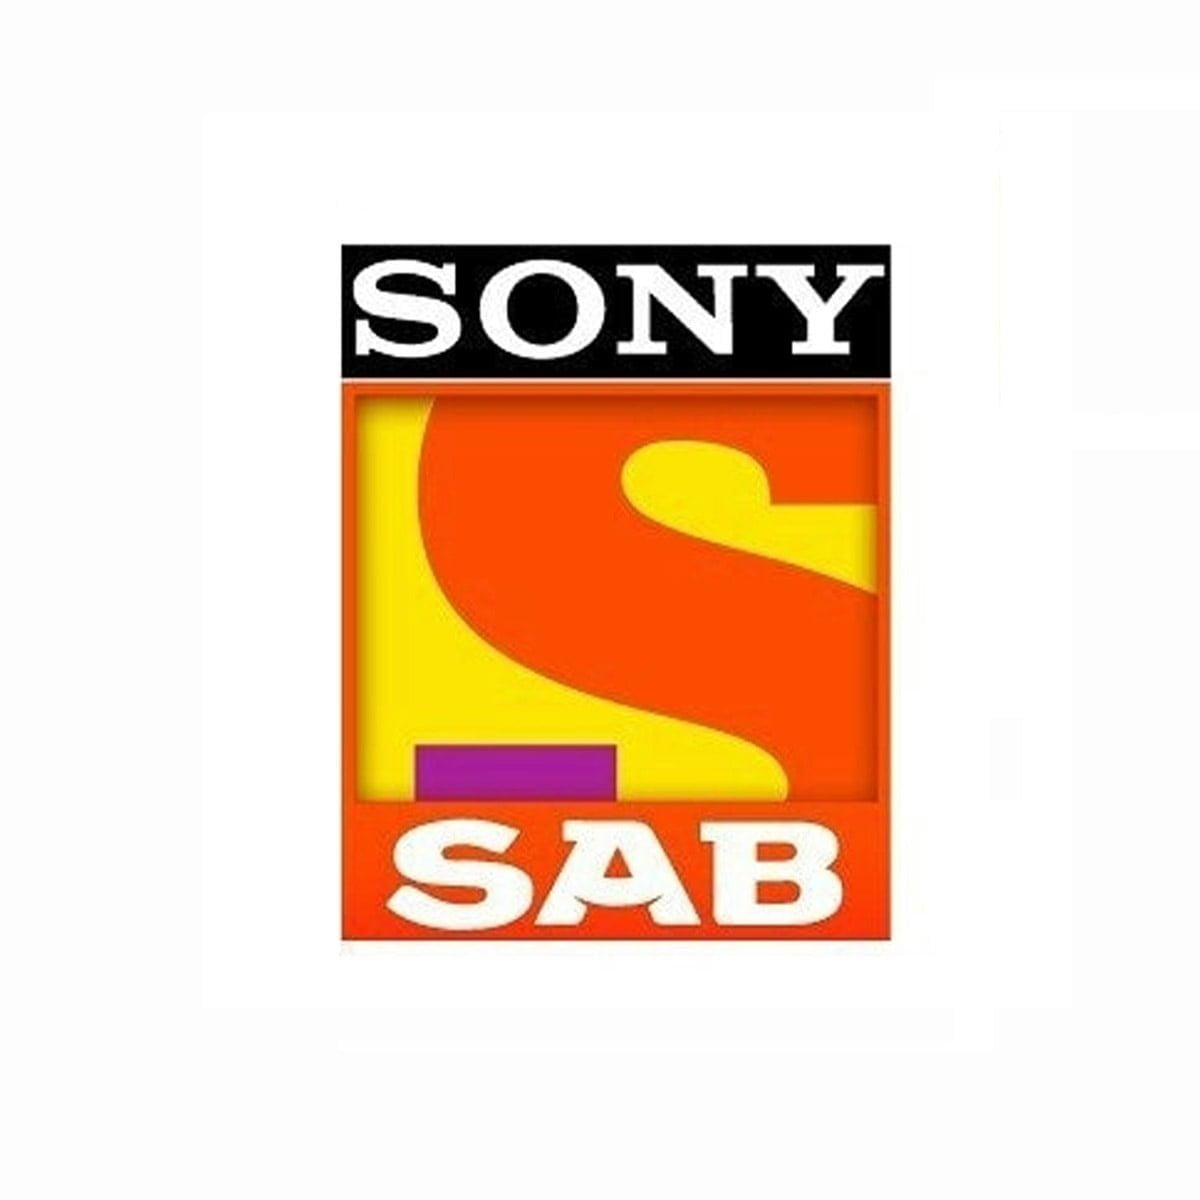 Sony SAB launches 'New Year Idea' contest